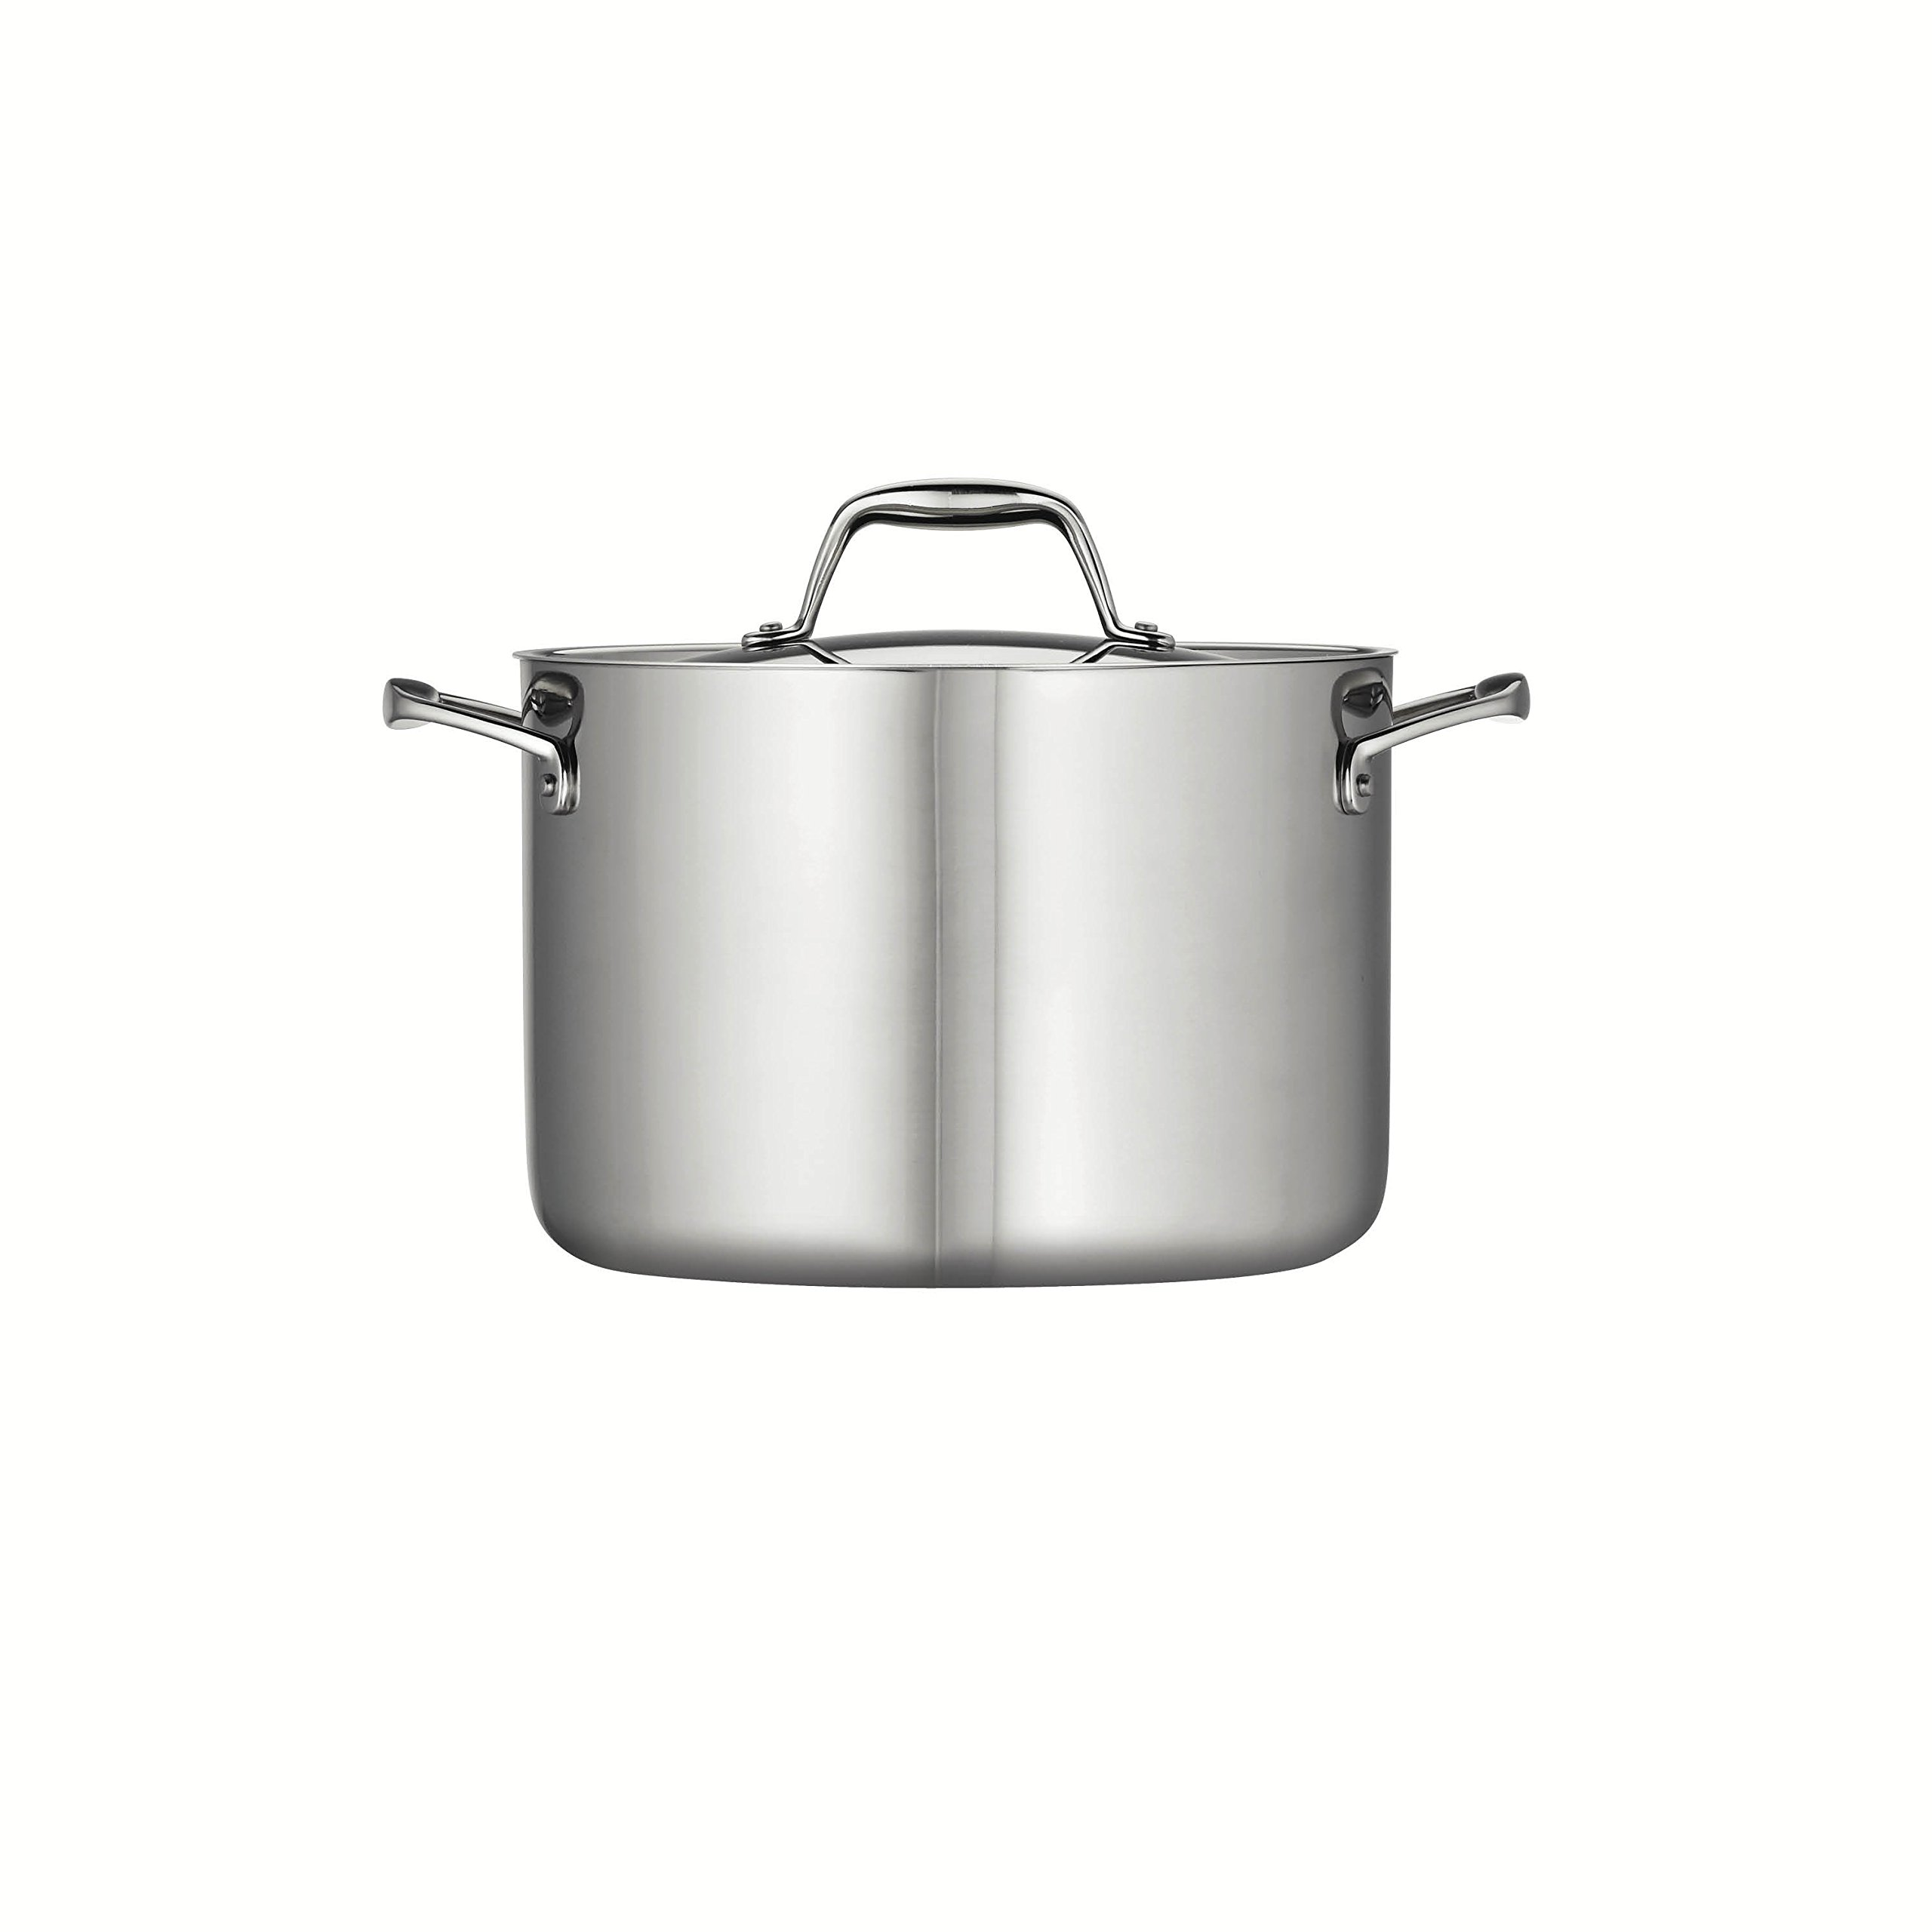 Tramontina 80116/041DS Gourmet 18/10 Stainless Steel Induction-Ready Tri-Ply Clad Covered Stock Pot, 8-Quart, NSF-Certified, Made in Brazil by Tramontina (Image #2)